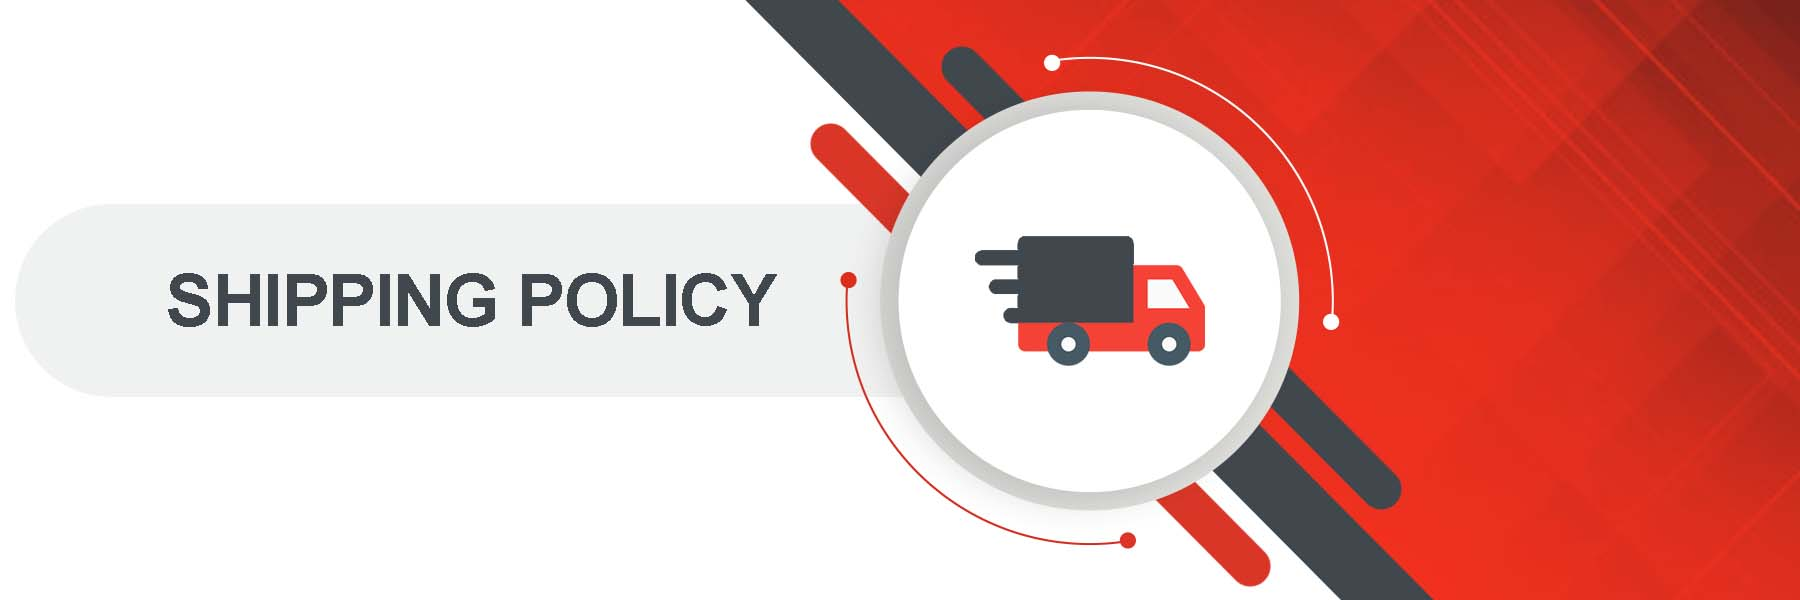 Aguante Shipping Policy